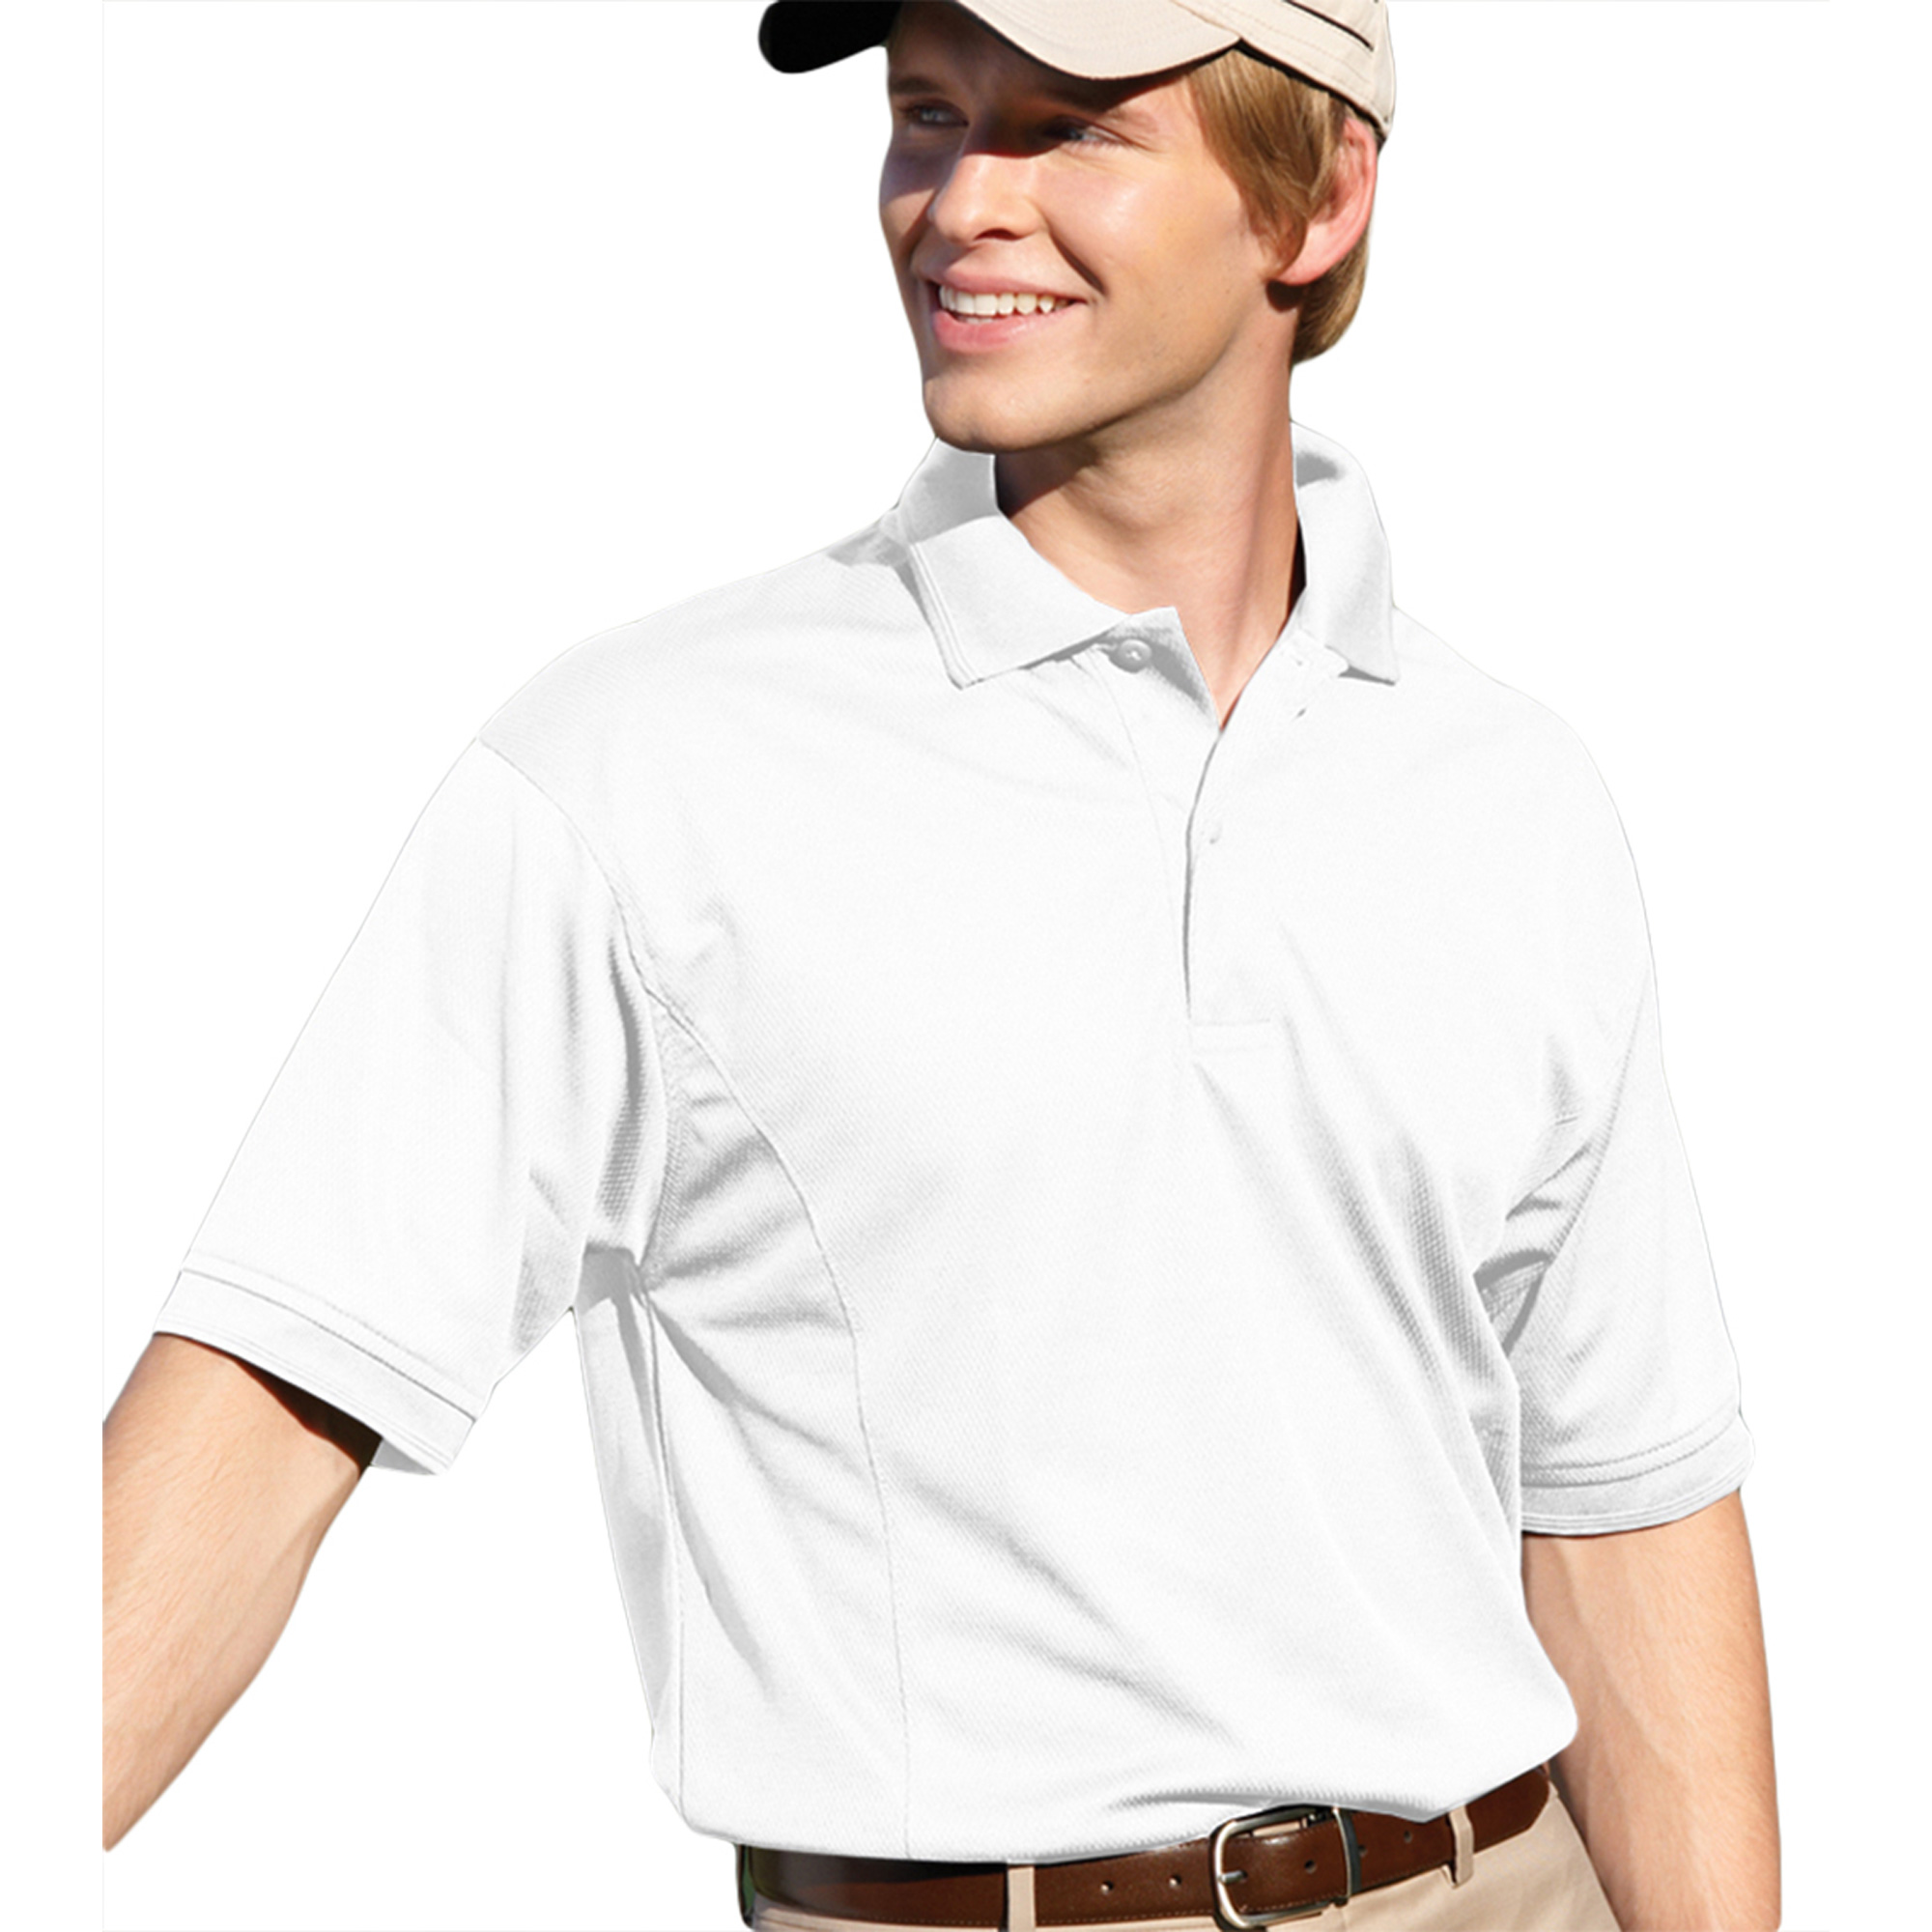 00820599180965 MENS PERFORMANCE GOLF SHIRT 2800 BUTTER M